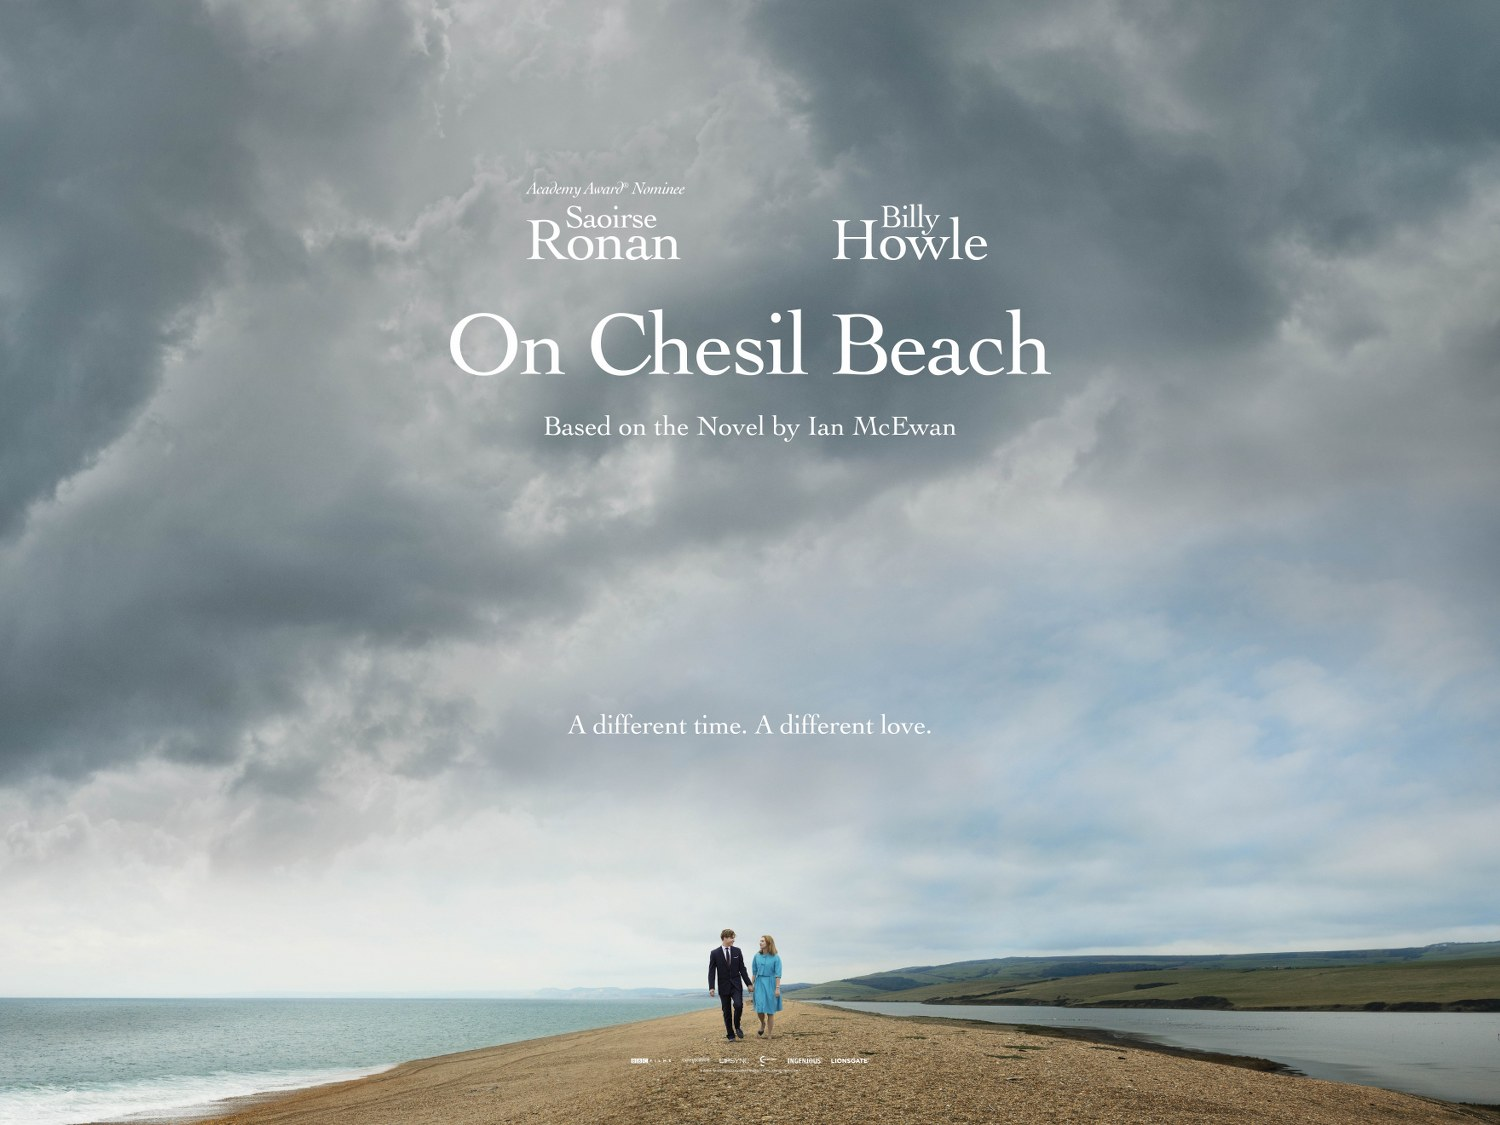 on chesil beach quad poster